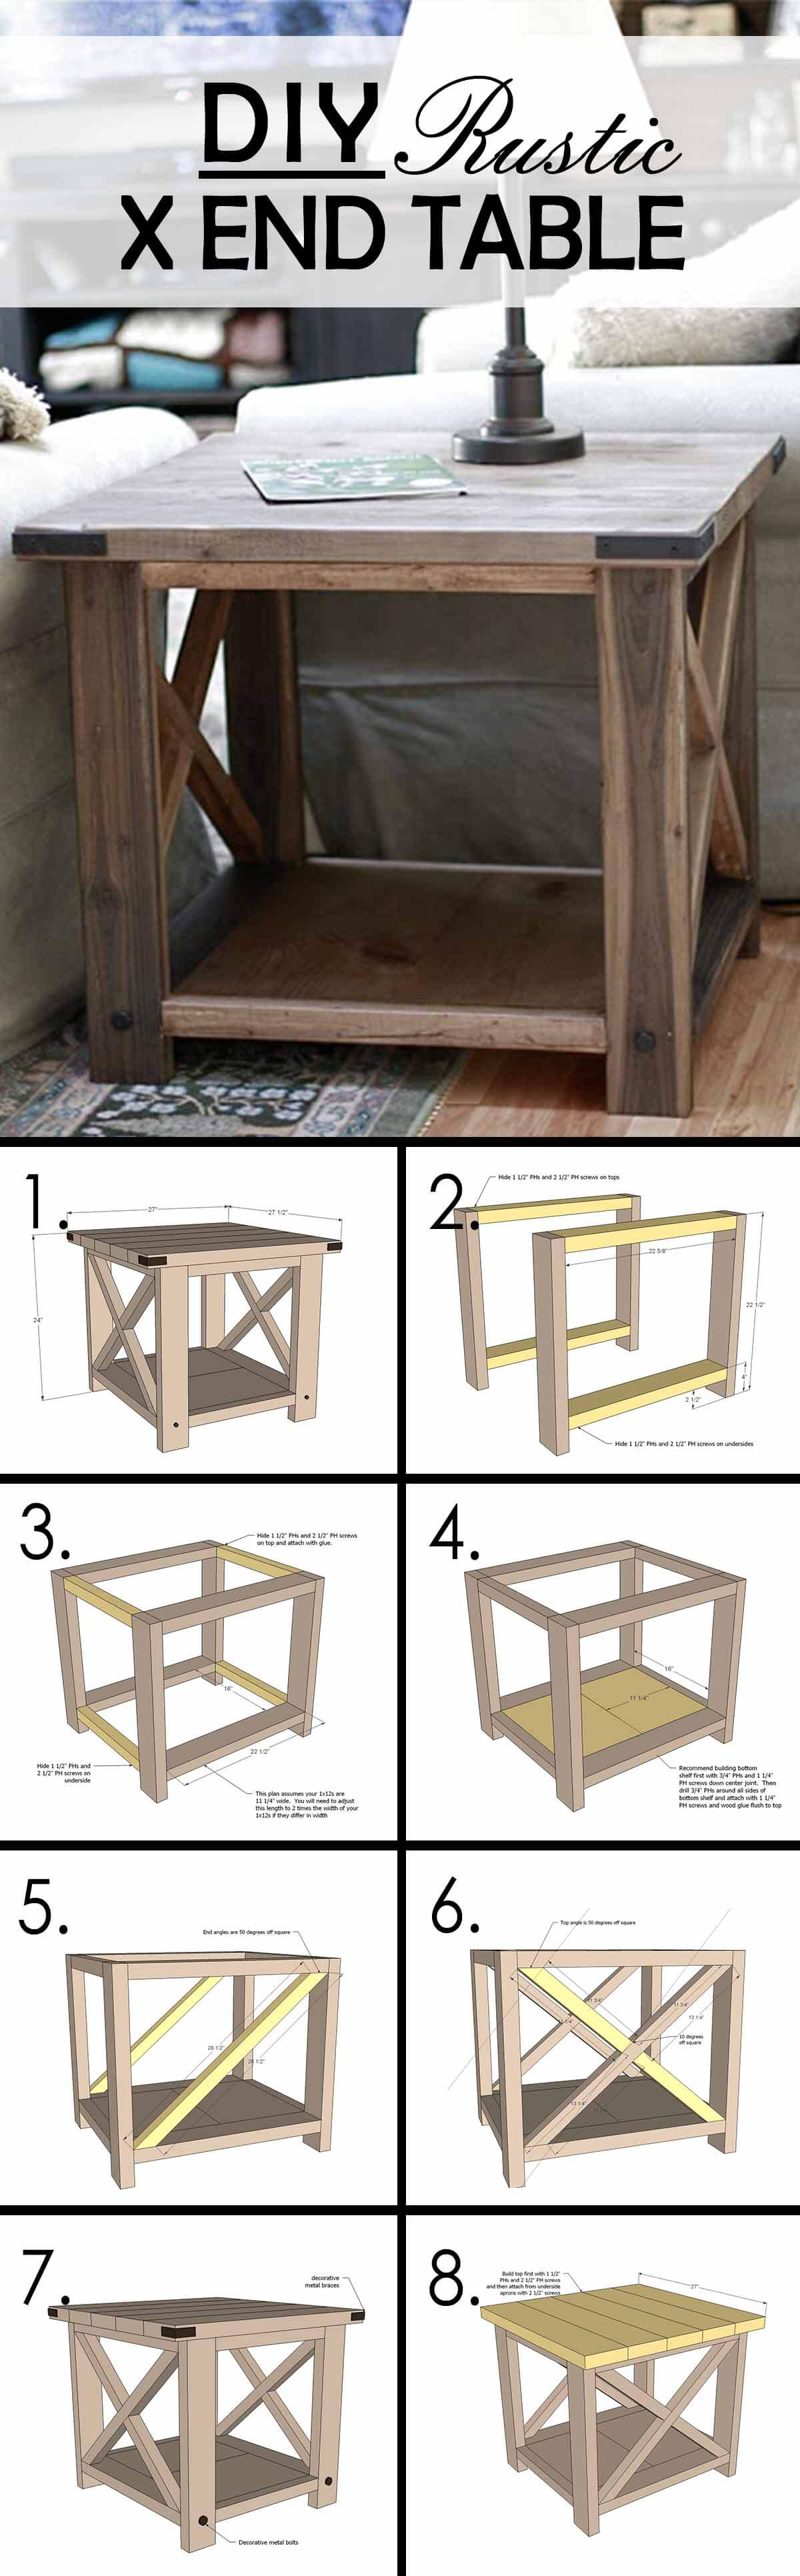 best diy farmhouse coffee table ideas and designs for homebnc accent build your own rustic cube end tables tall side with storage small pedestal metal legs unusual lamp shades